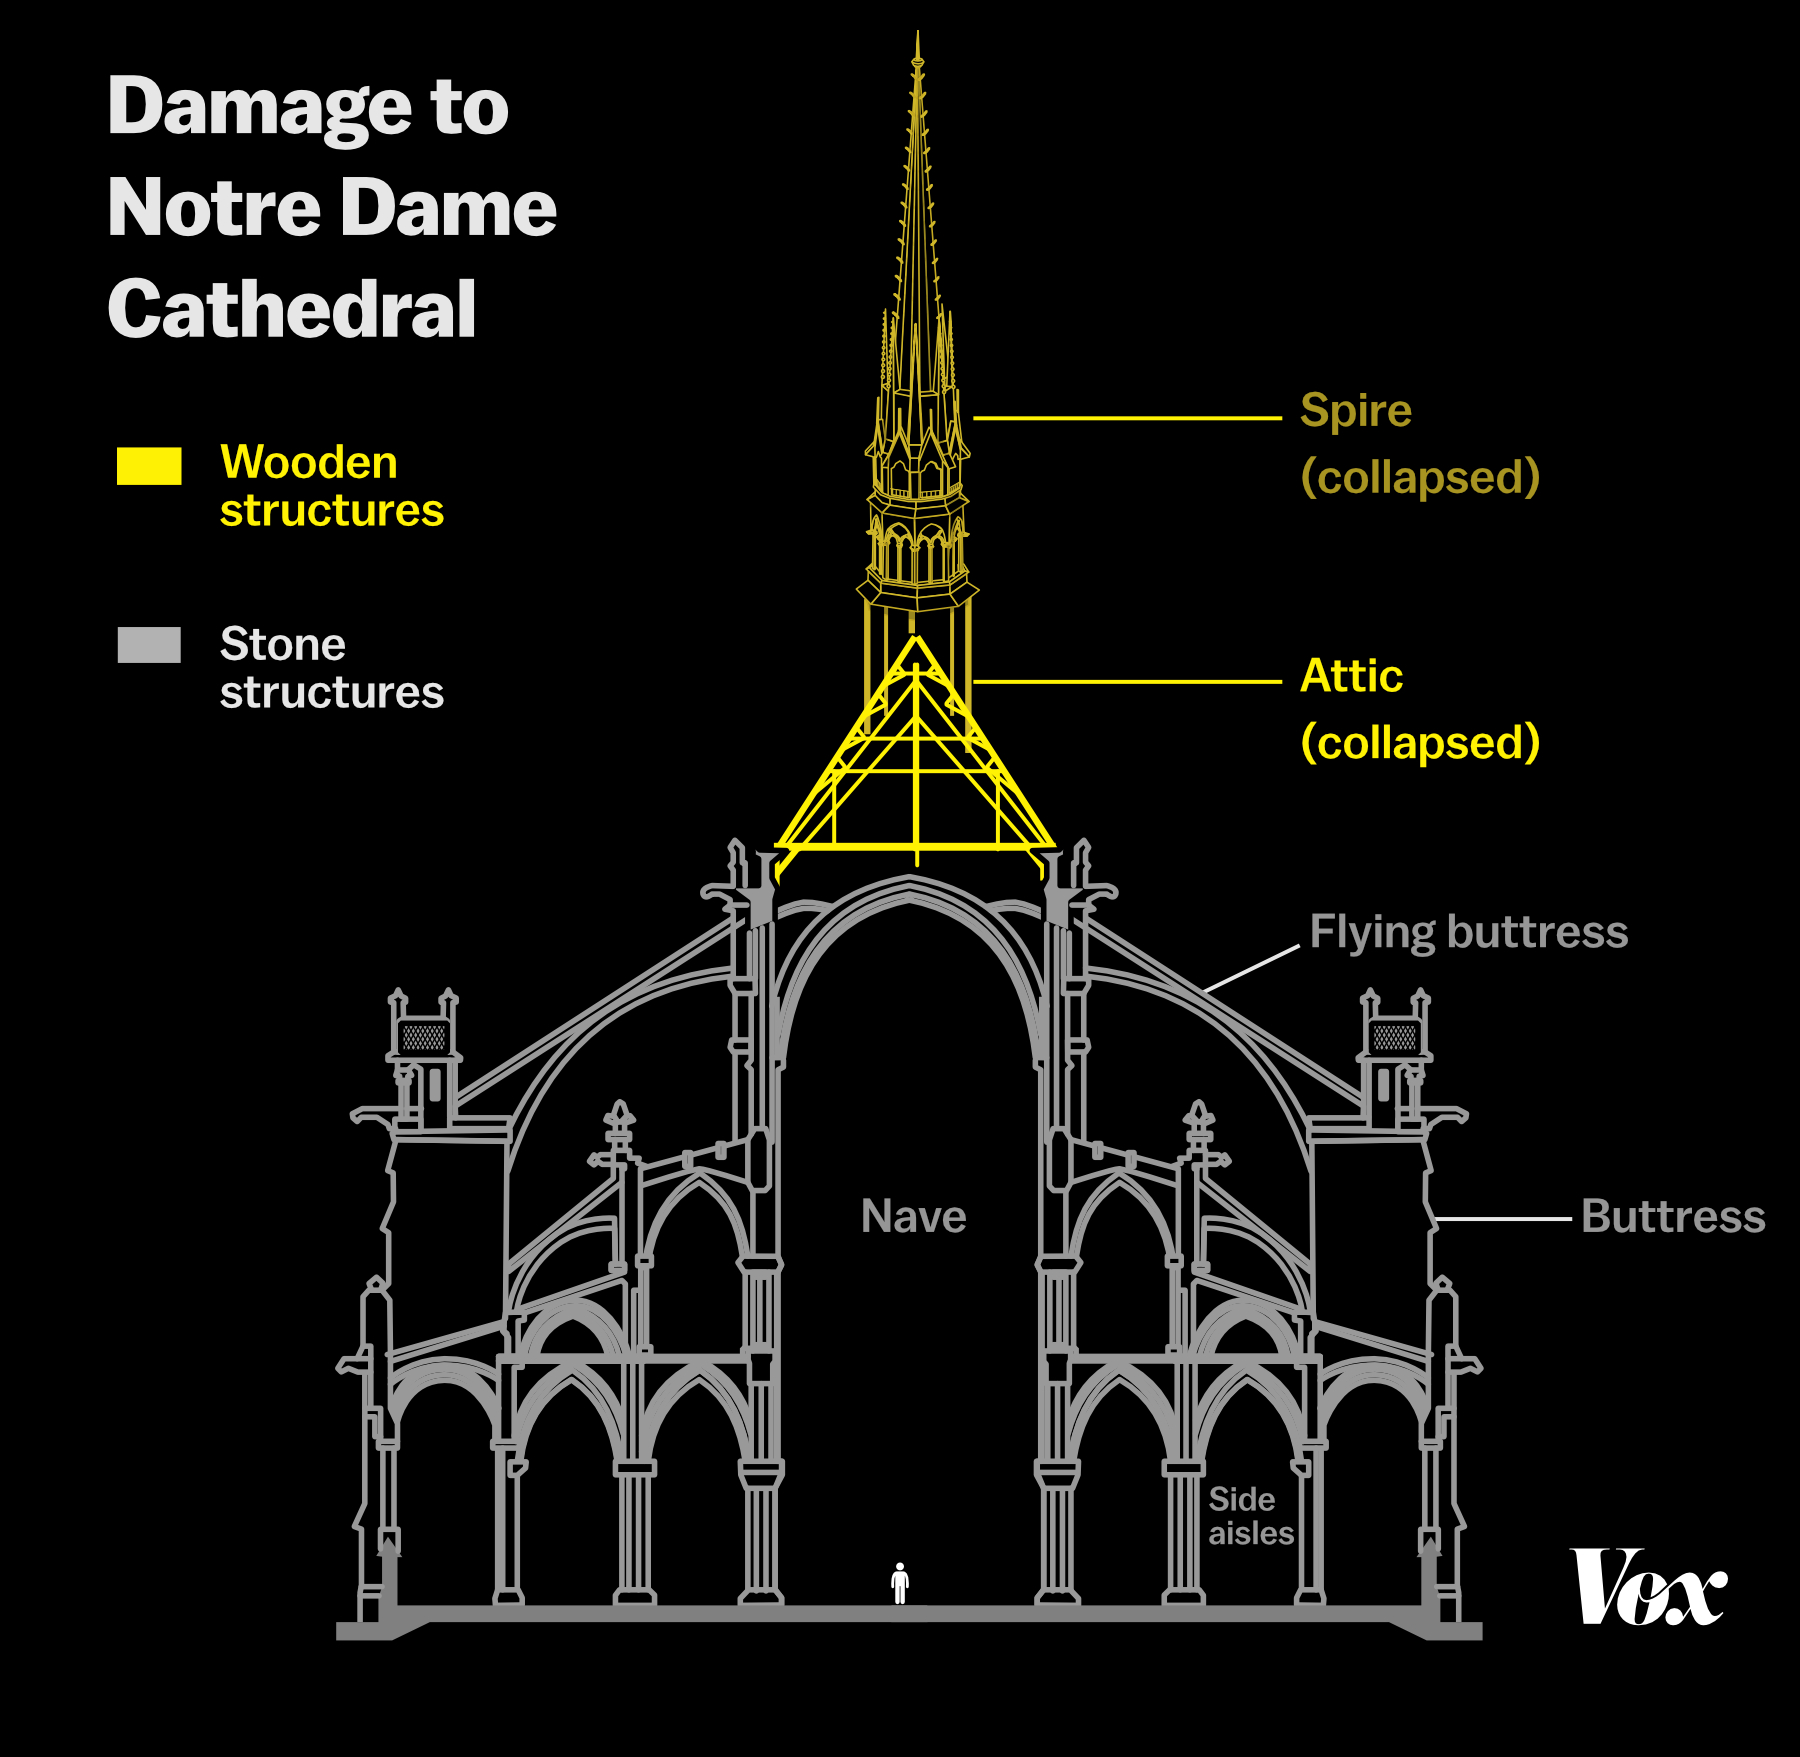 Notre Dame Cathedral fire: why it was so destructive, according to fire engineers